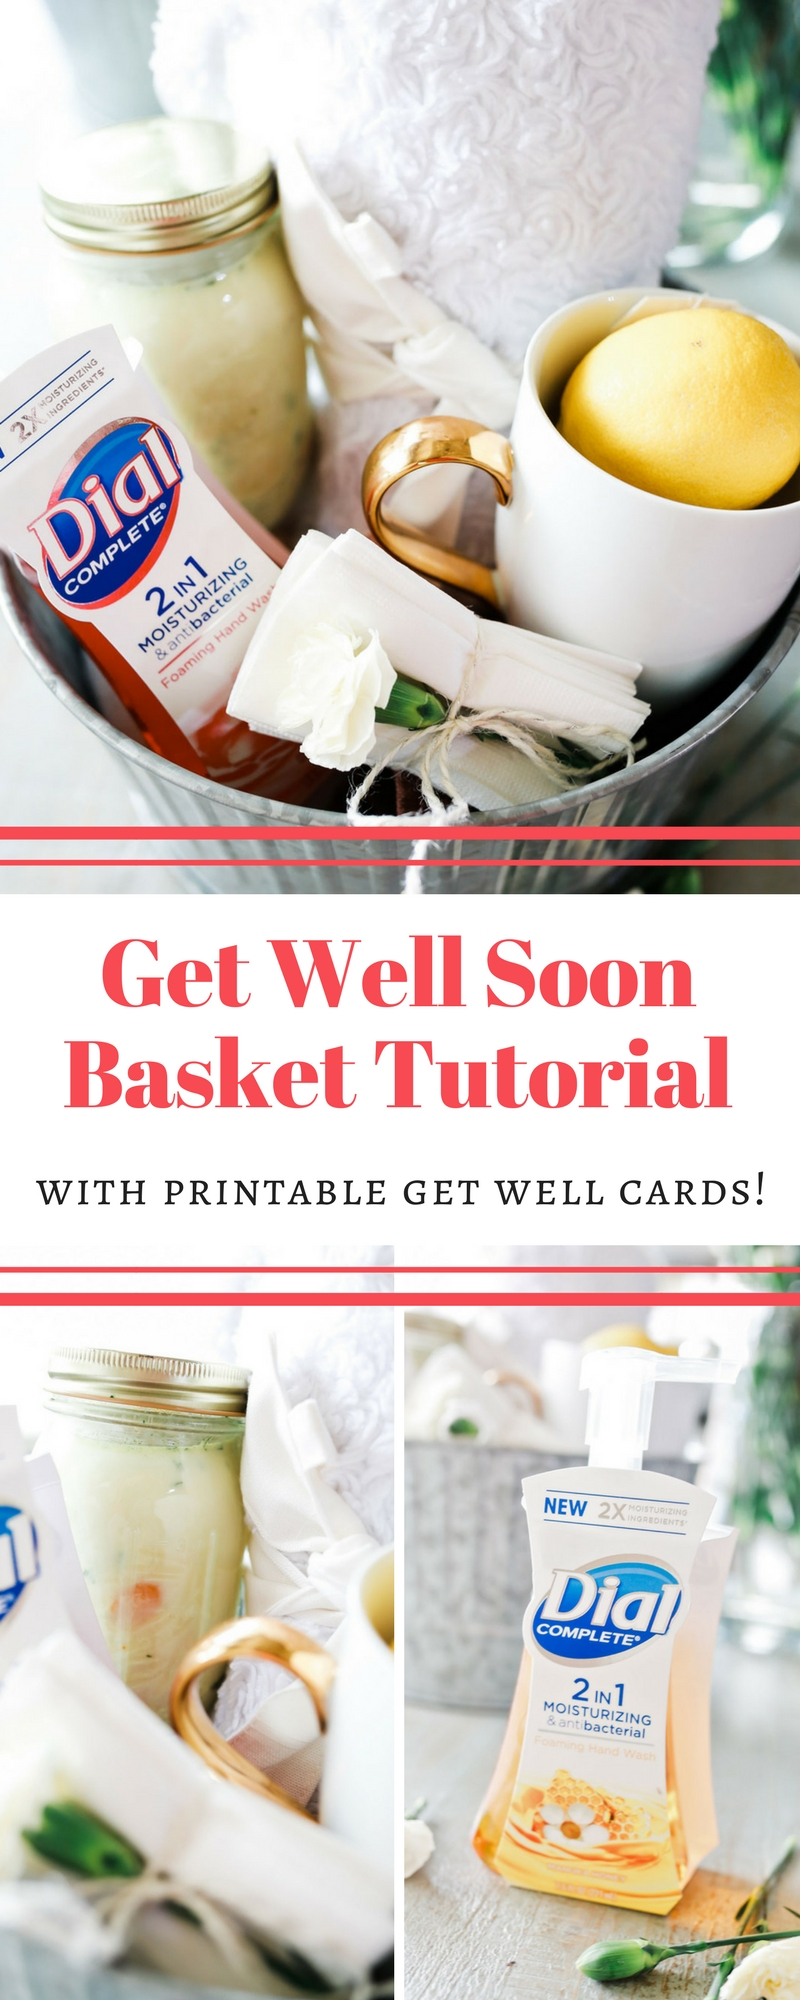 Get well soon gift idea with free printable card! #ad #Dial2in1 #CollectiveBias